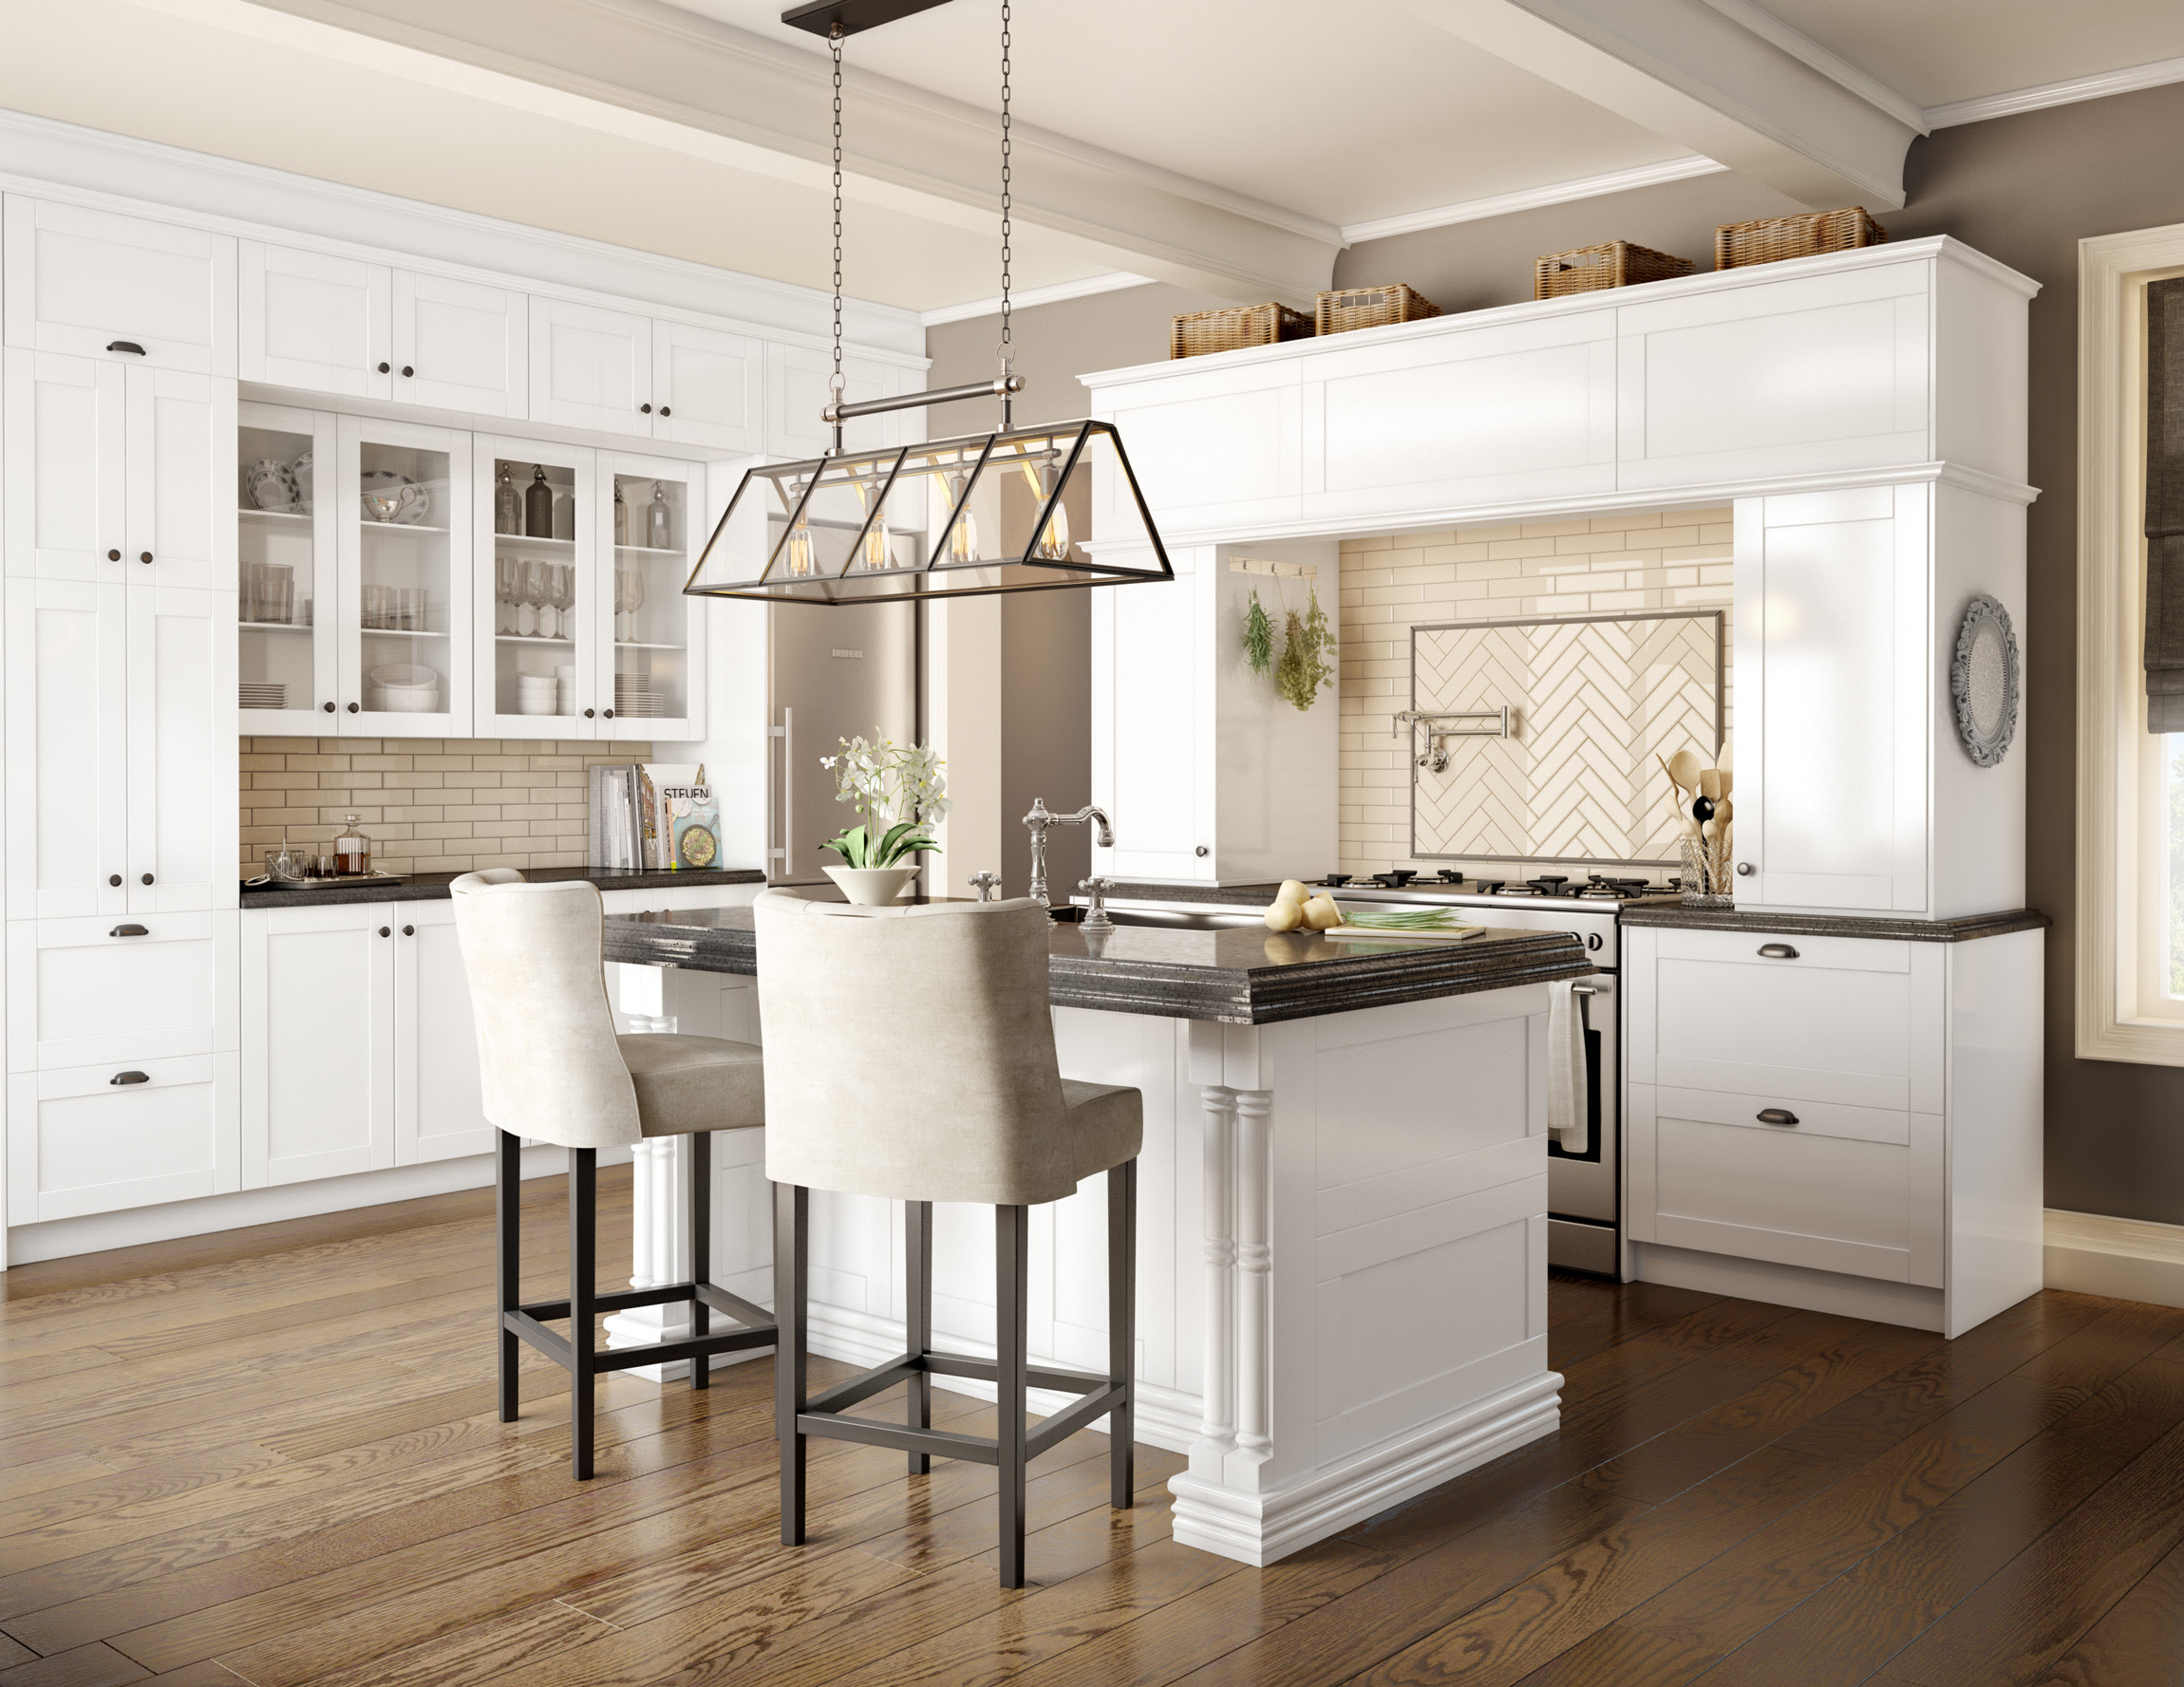 EUROSTYLE | Ready-to-Assemble Kitchen, Bathroom and ...